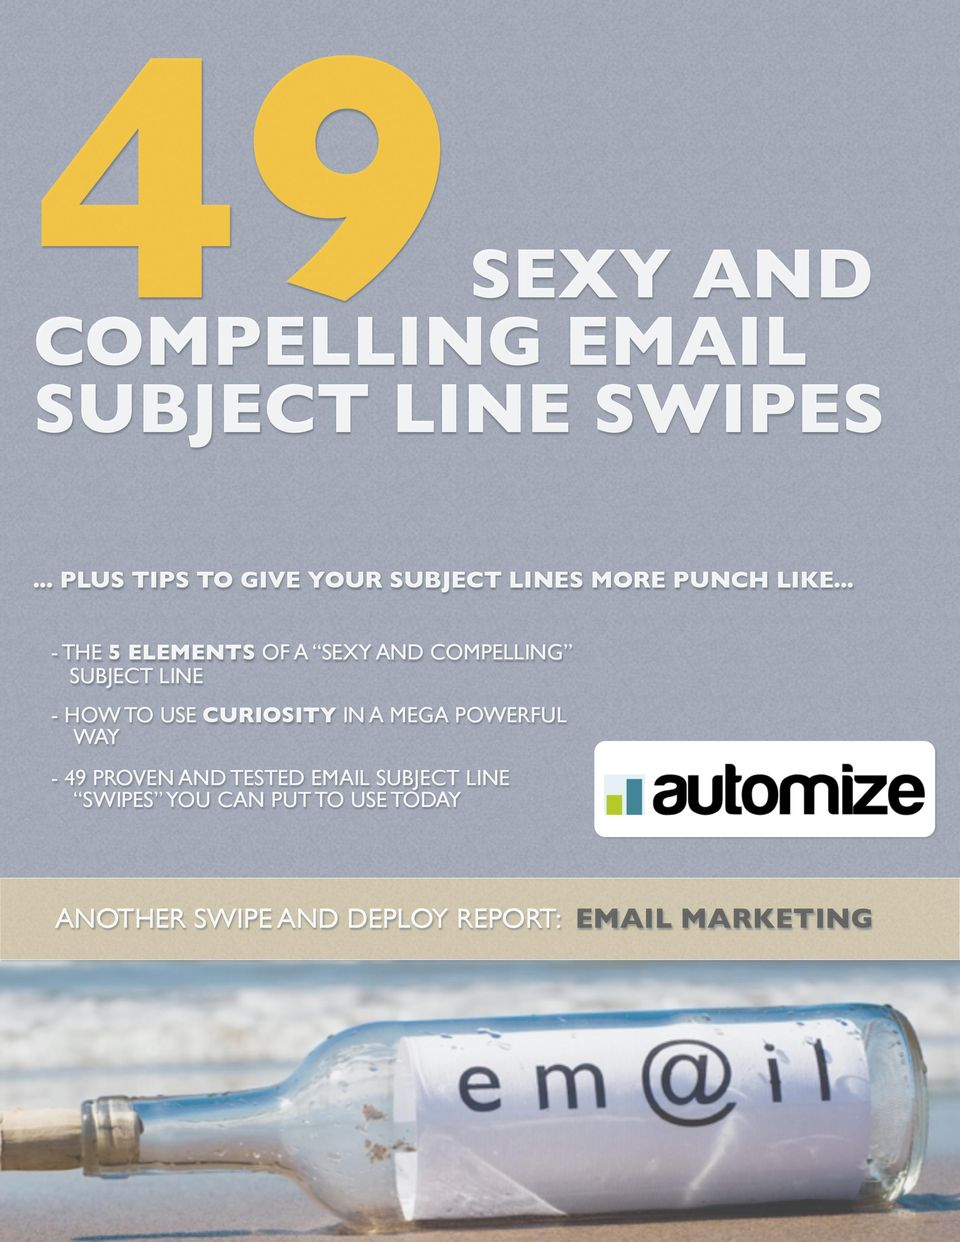 .. - THE 5 ELEMENTS OF A SEXY AND COMPELLING SUBJECT LINE - HOW TO USE CURIOSITY